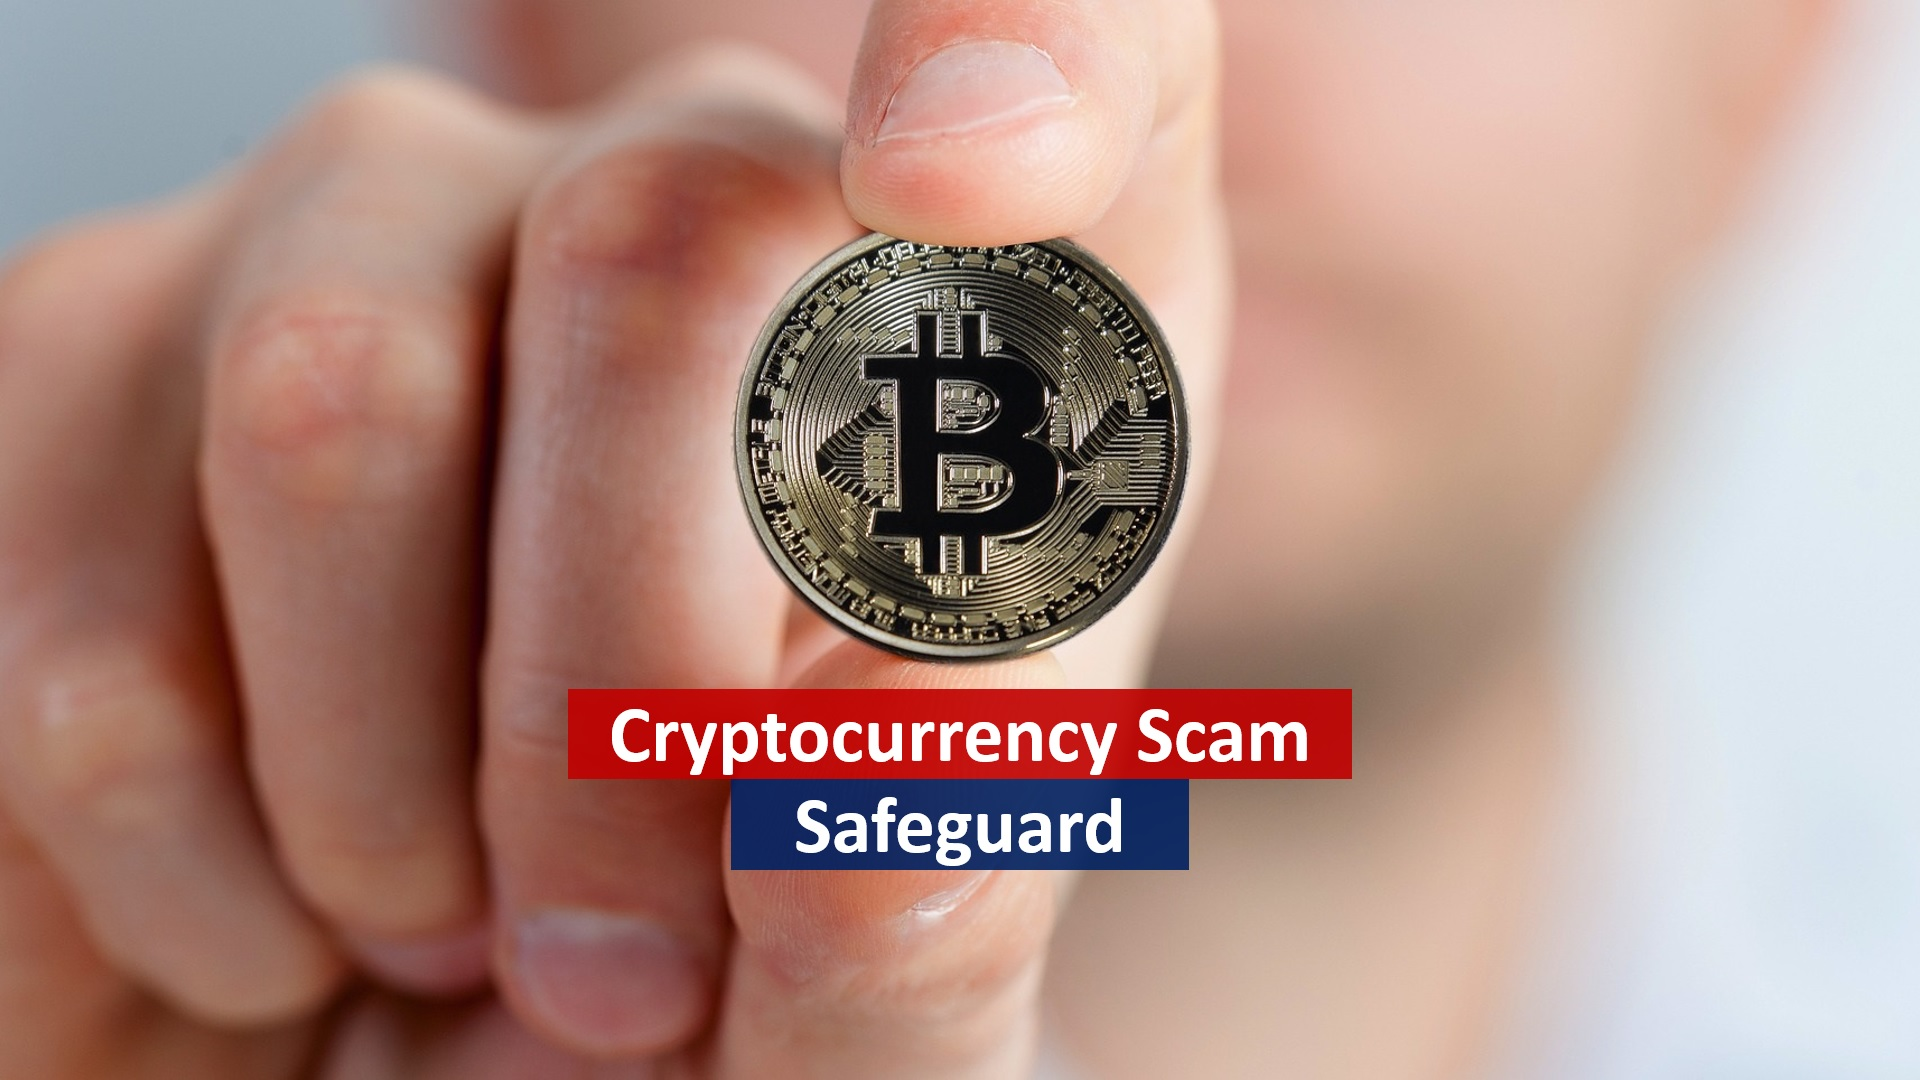 Cryptocurrency Scam Safeguards